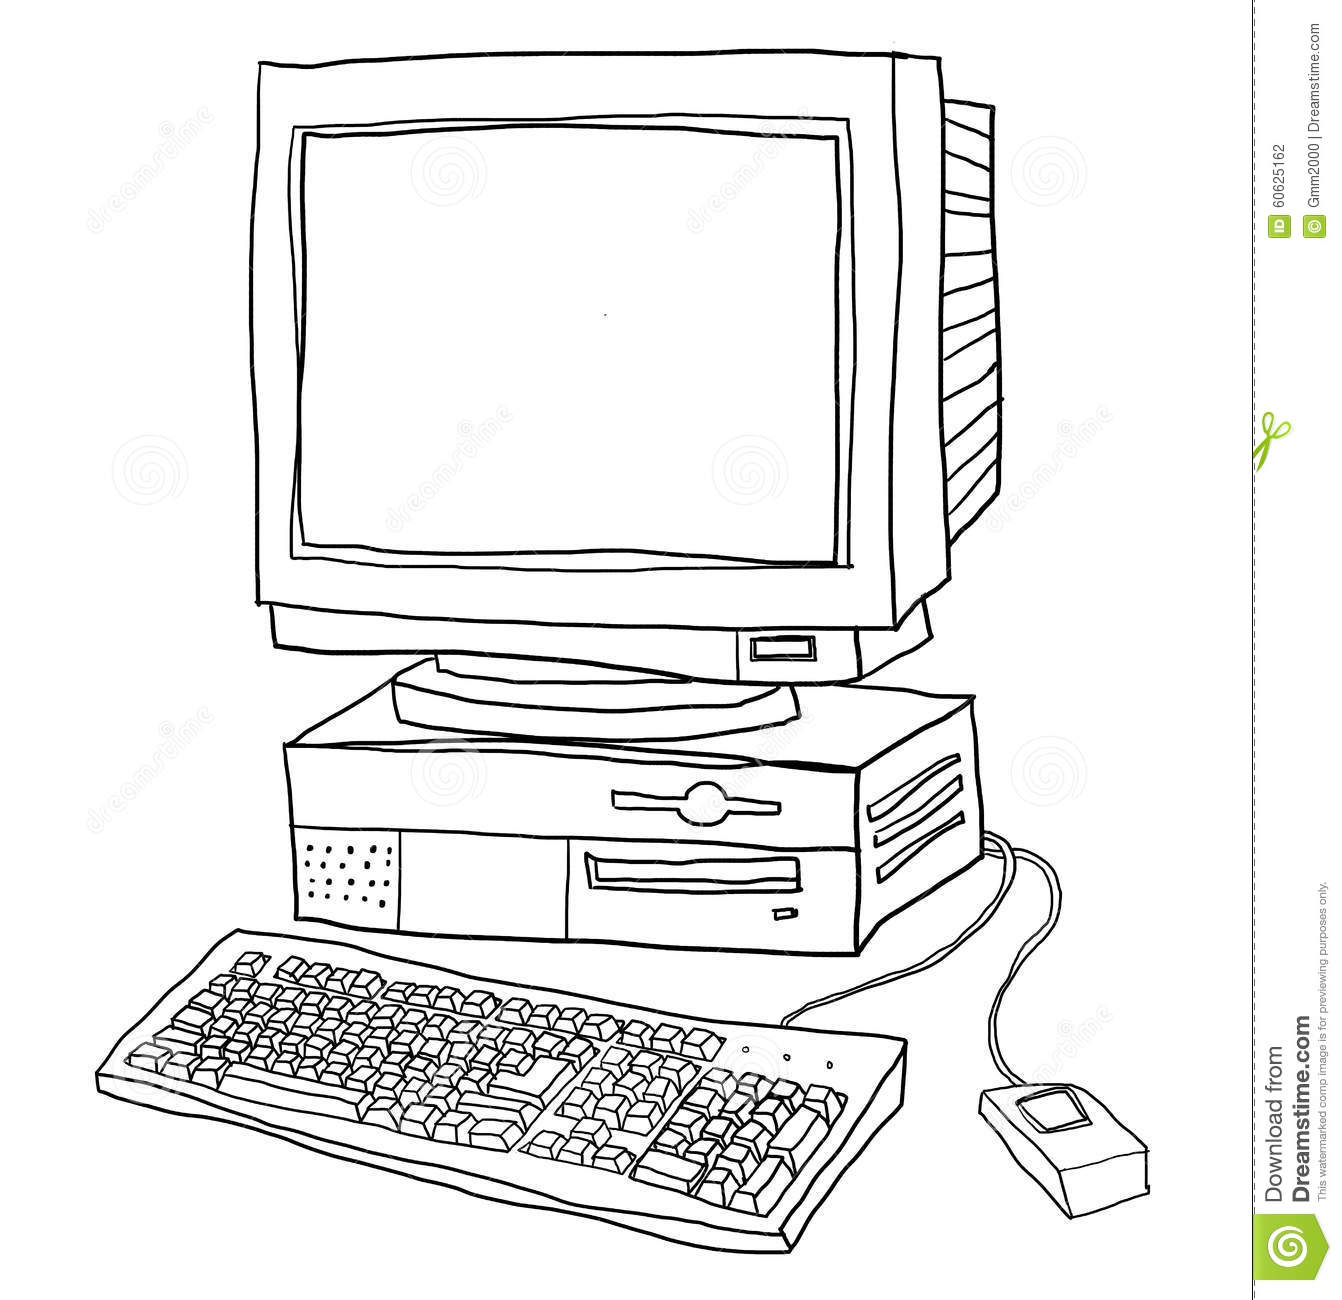 Line Art Laptop : Capslock cartoons illustrations vector stock images